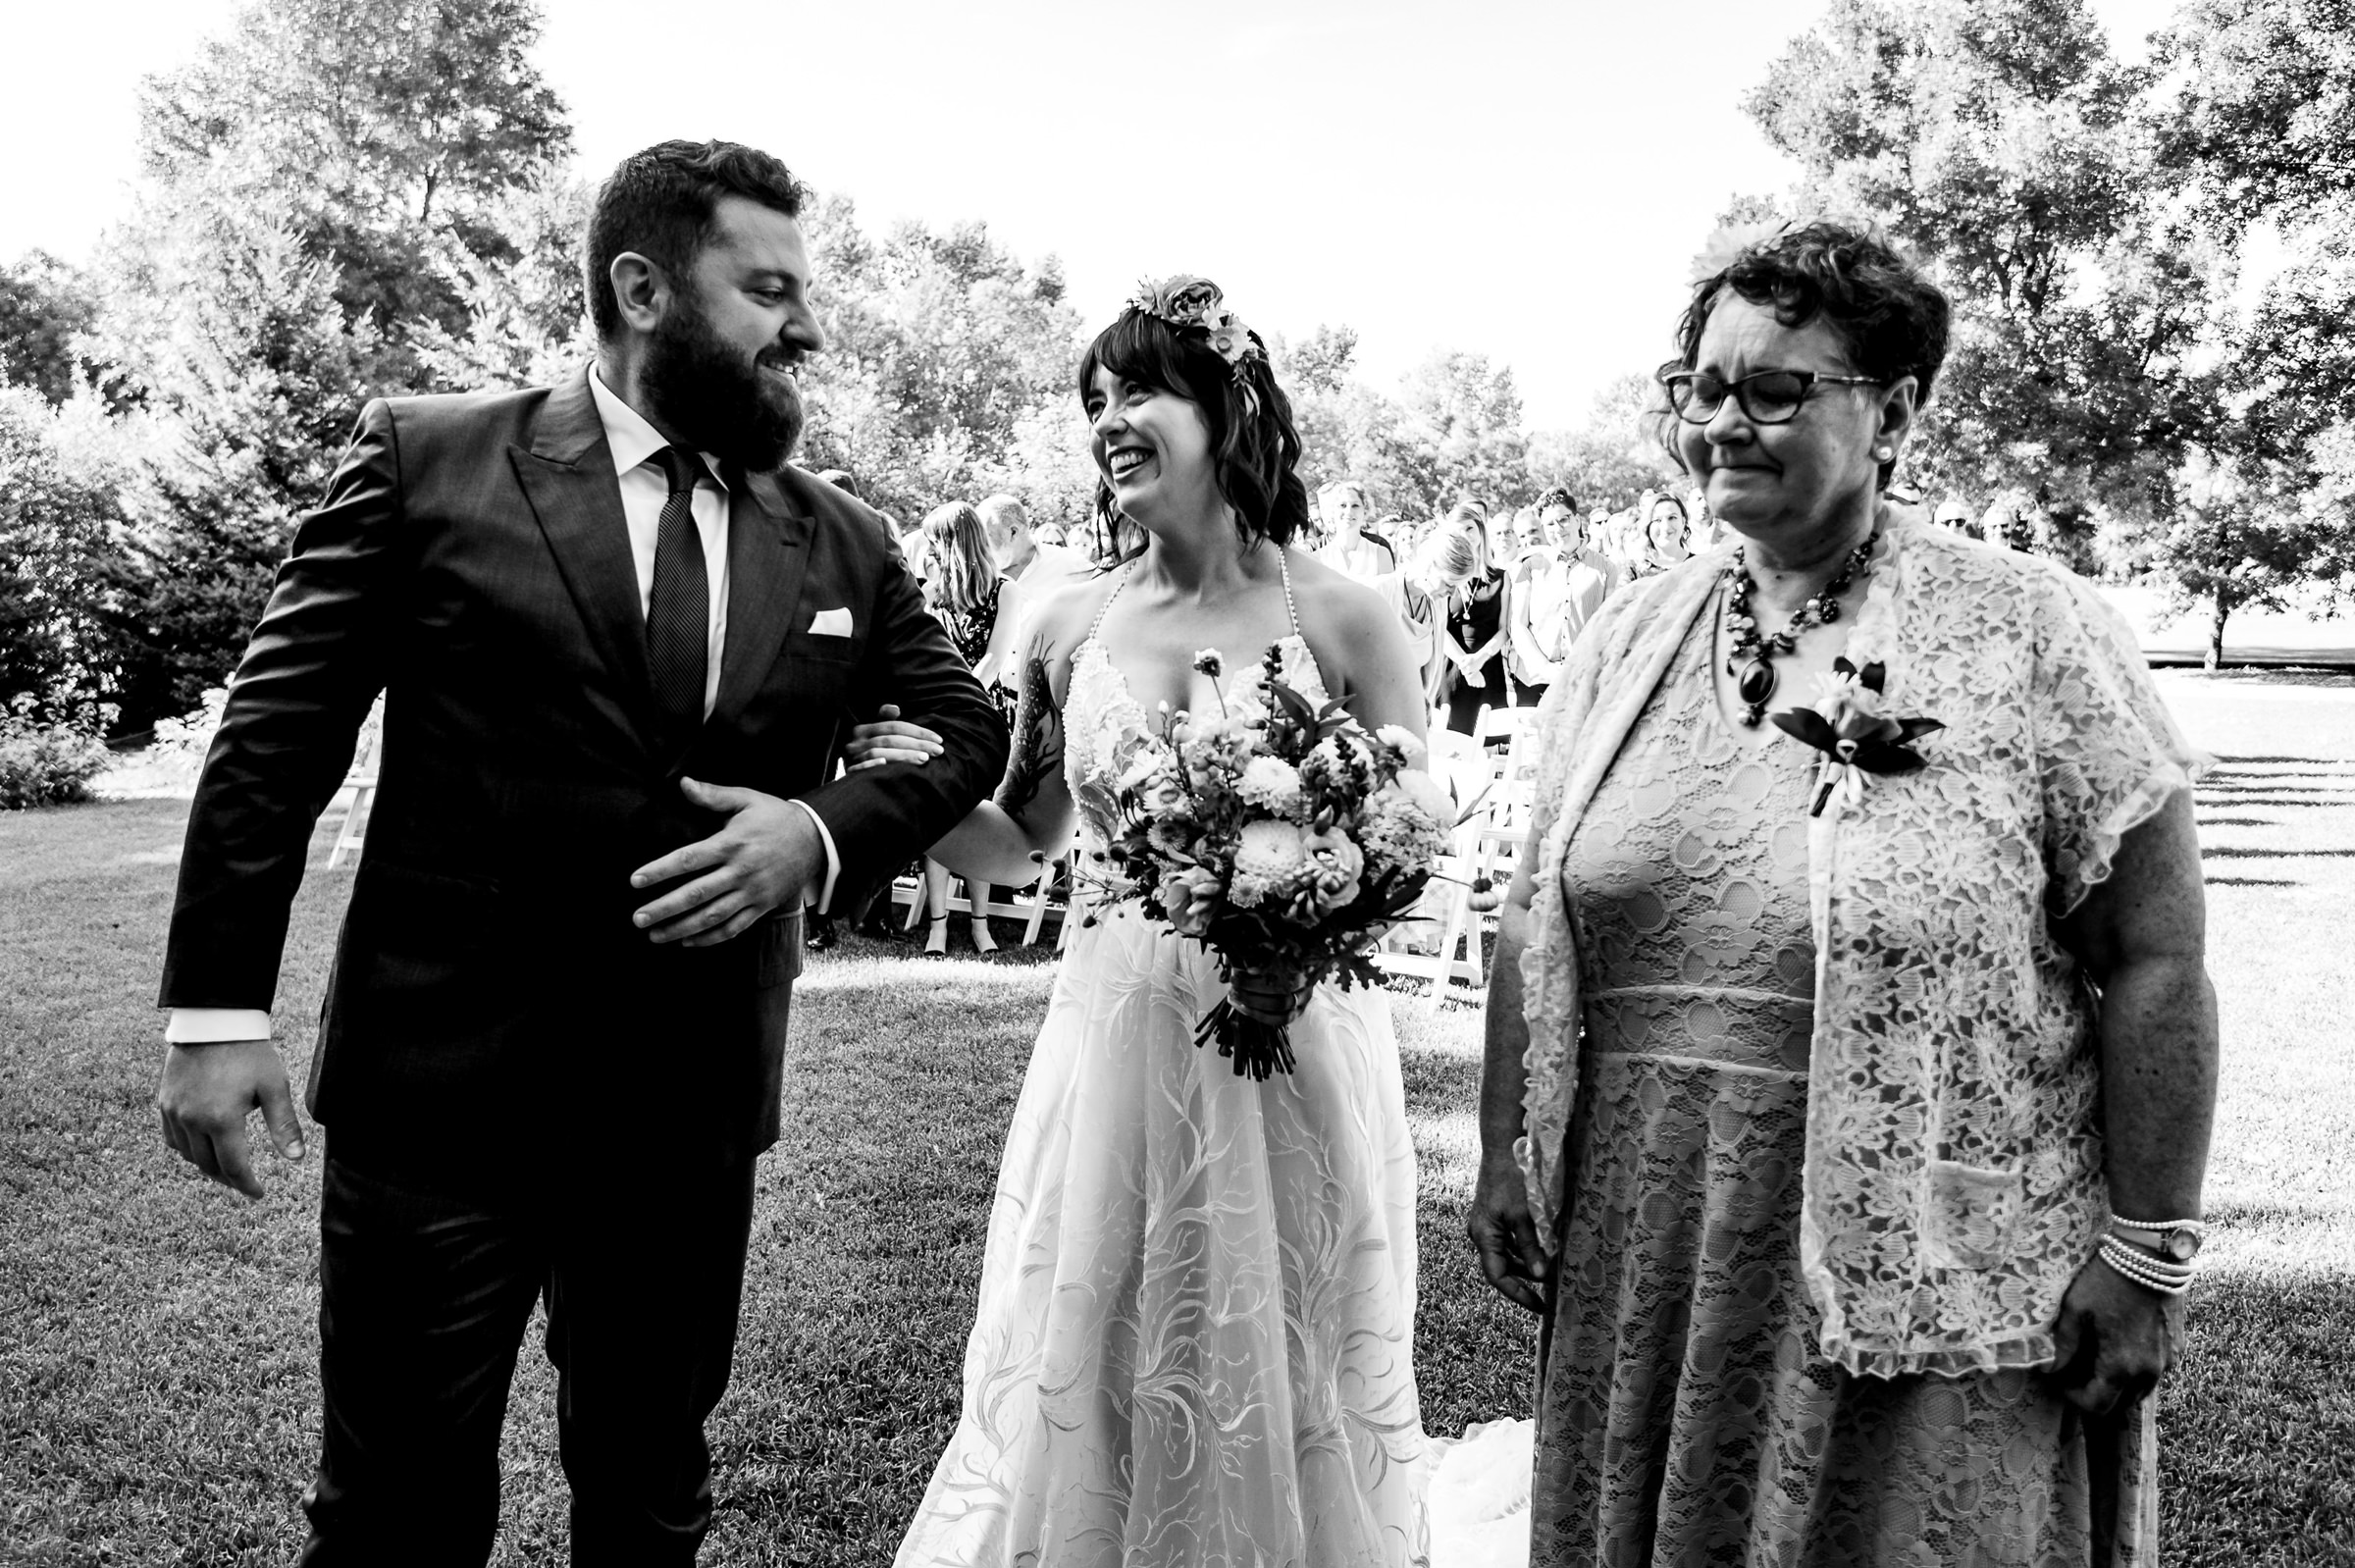 Groom and bride with mother at outdoor ceremony - photo by Moore Photography